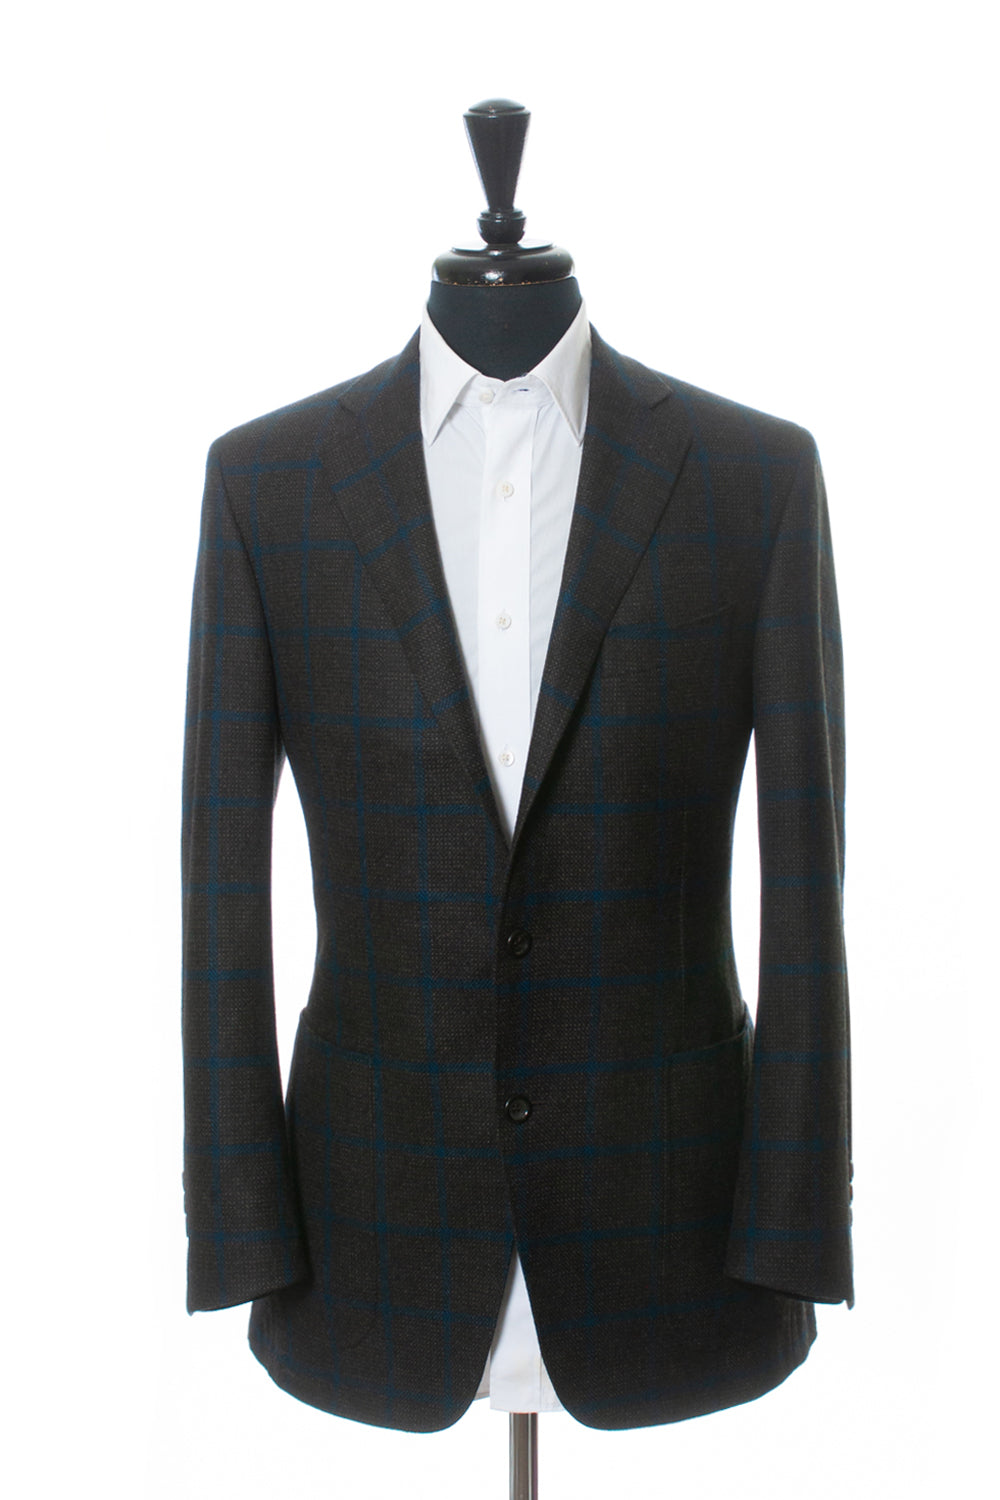 Canali 1934 Navy on Charcoal Check Wool Kei Blazer